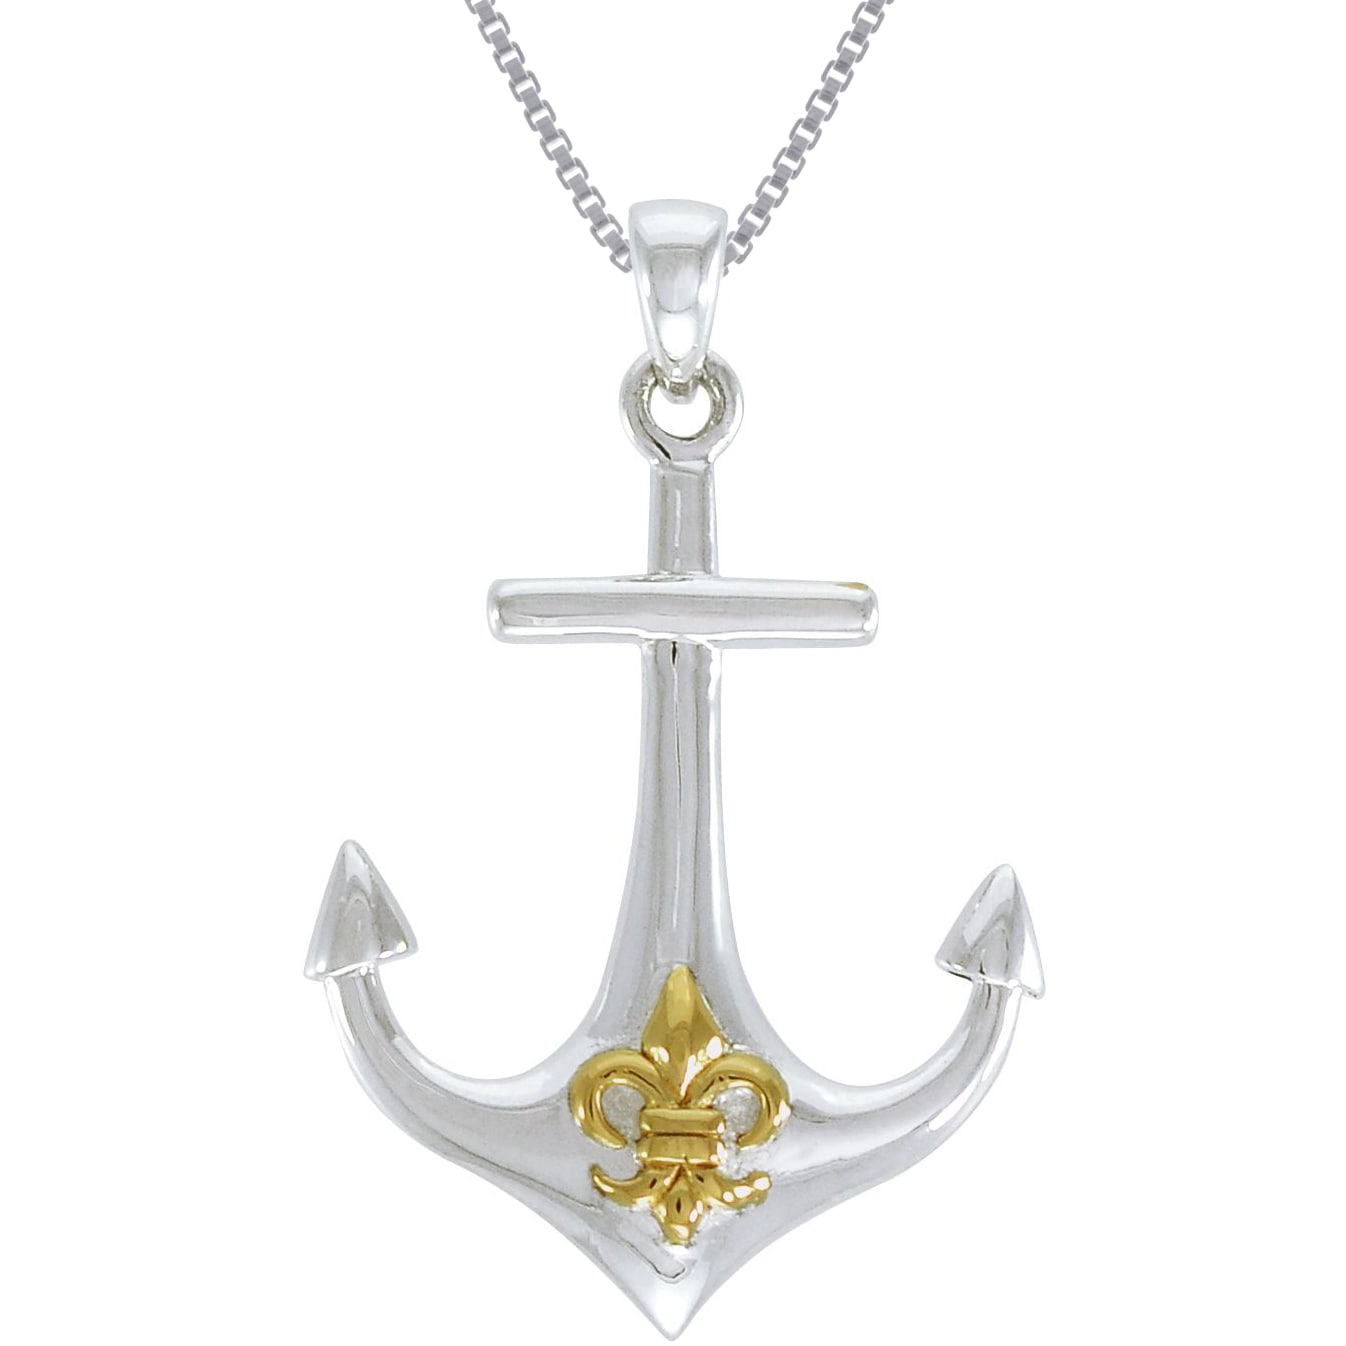 Sterling silver anchor pendant goldplated fleur de lis symbol sterling silver anchor pendant goldplated fleur de lis symbol necklace free shipping on orders over 45 overstock 17308731 aloadofball Gallery